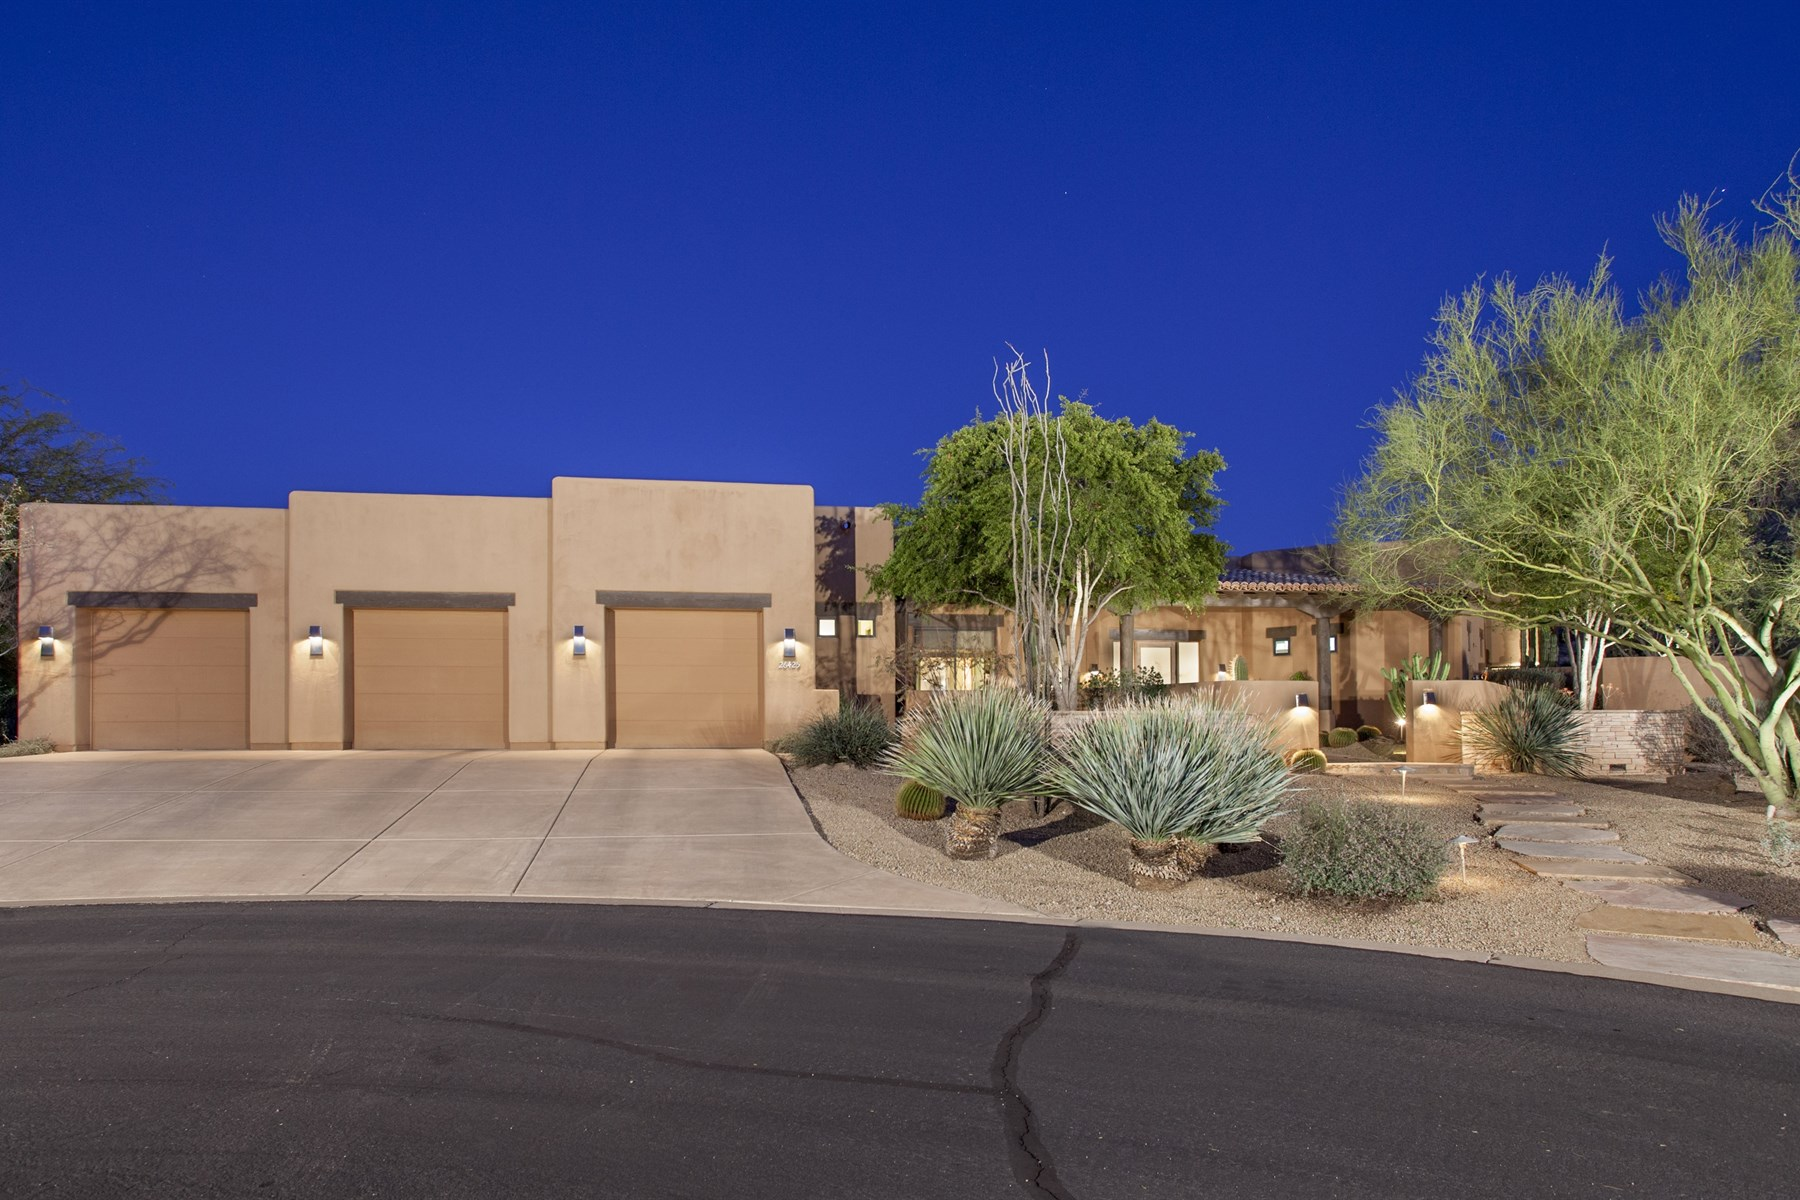 Single Family Home for Sale at Pristine soft contemporary home. 26425 N 107TH WAY Scottsdale, Arizona 85255 United States